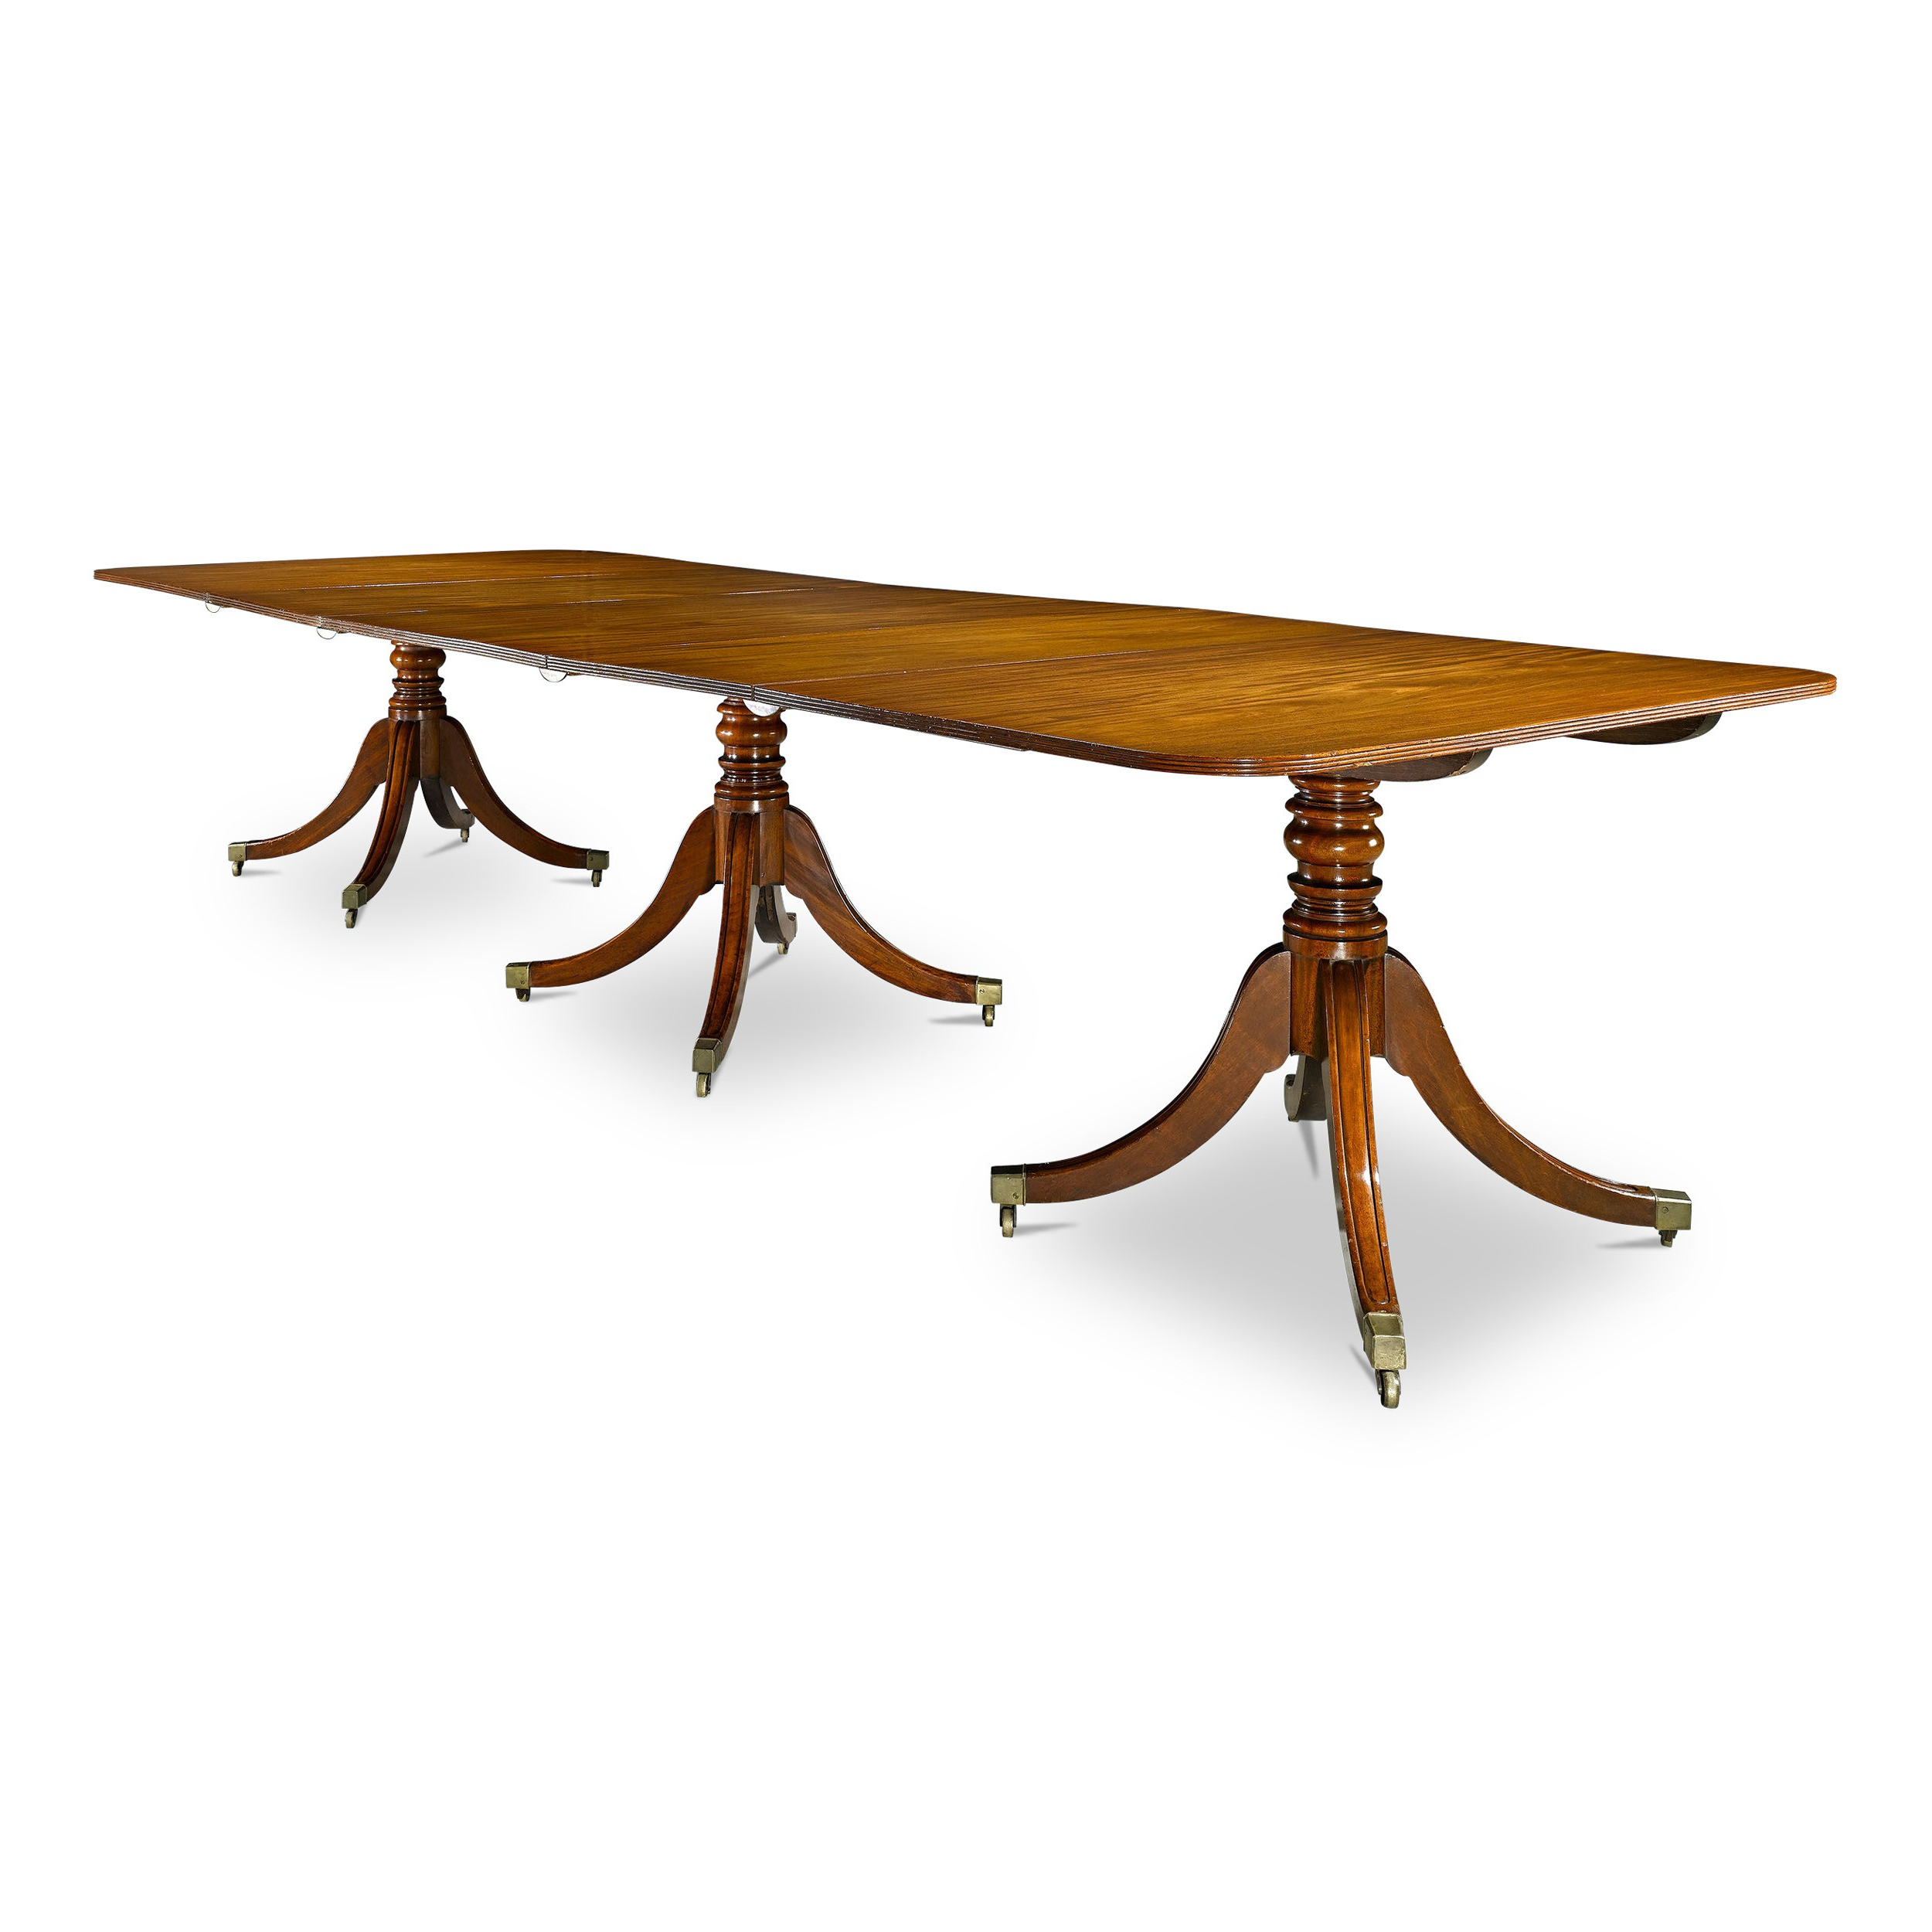 Most Recent Wood Kitchen Dining Tables With Removable Center Leaf Intended For Guide To Antique Tables – M.s (View 10 of 30)